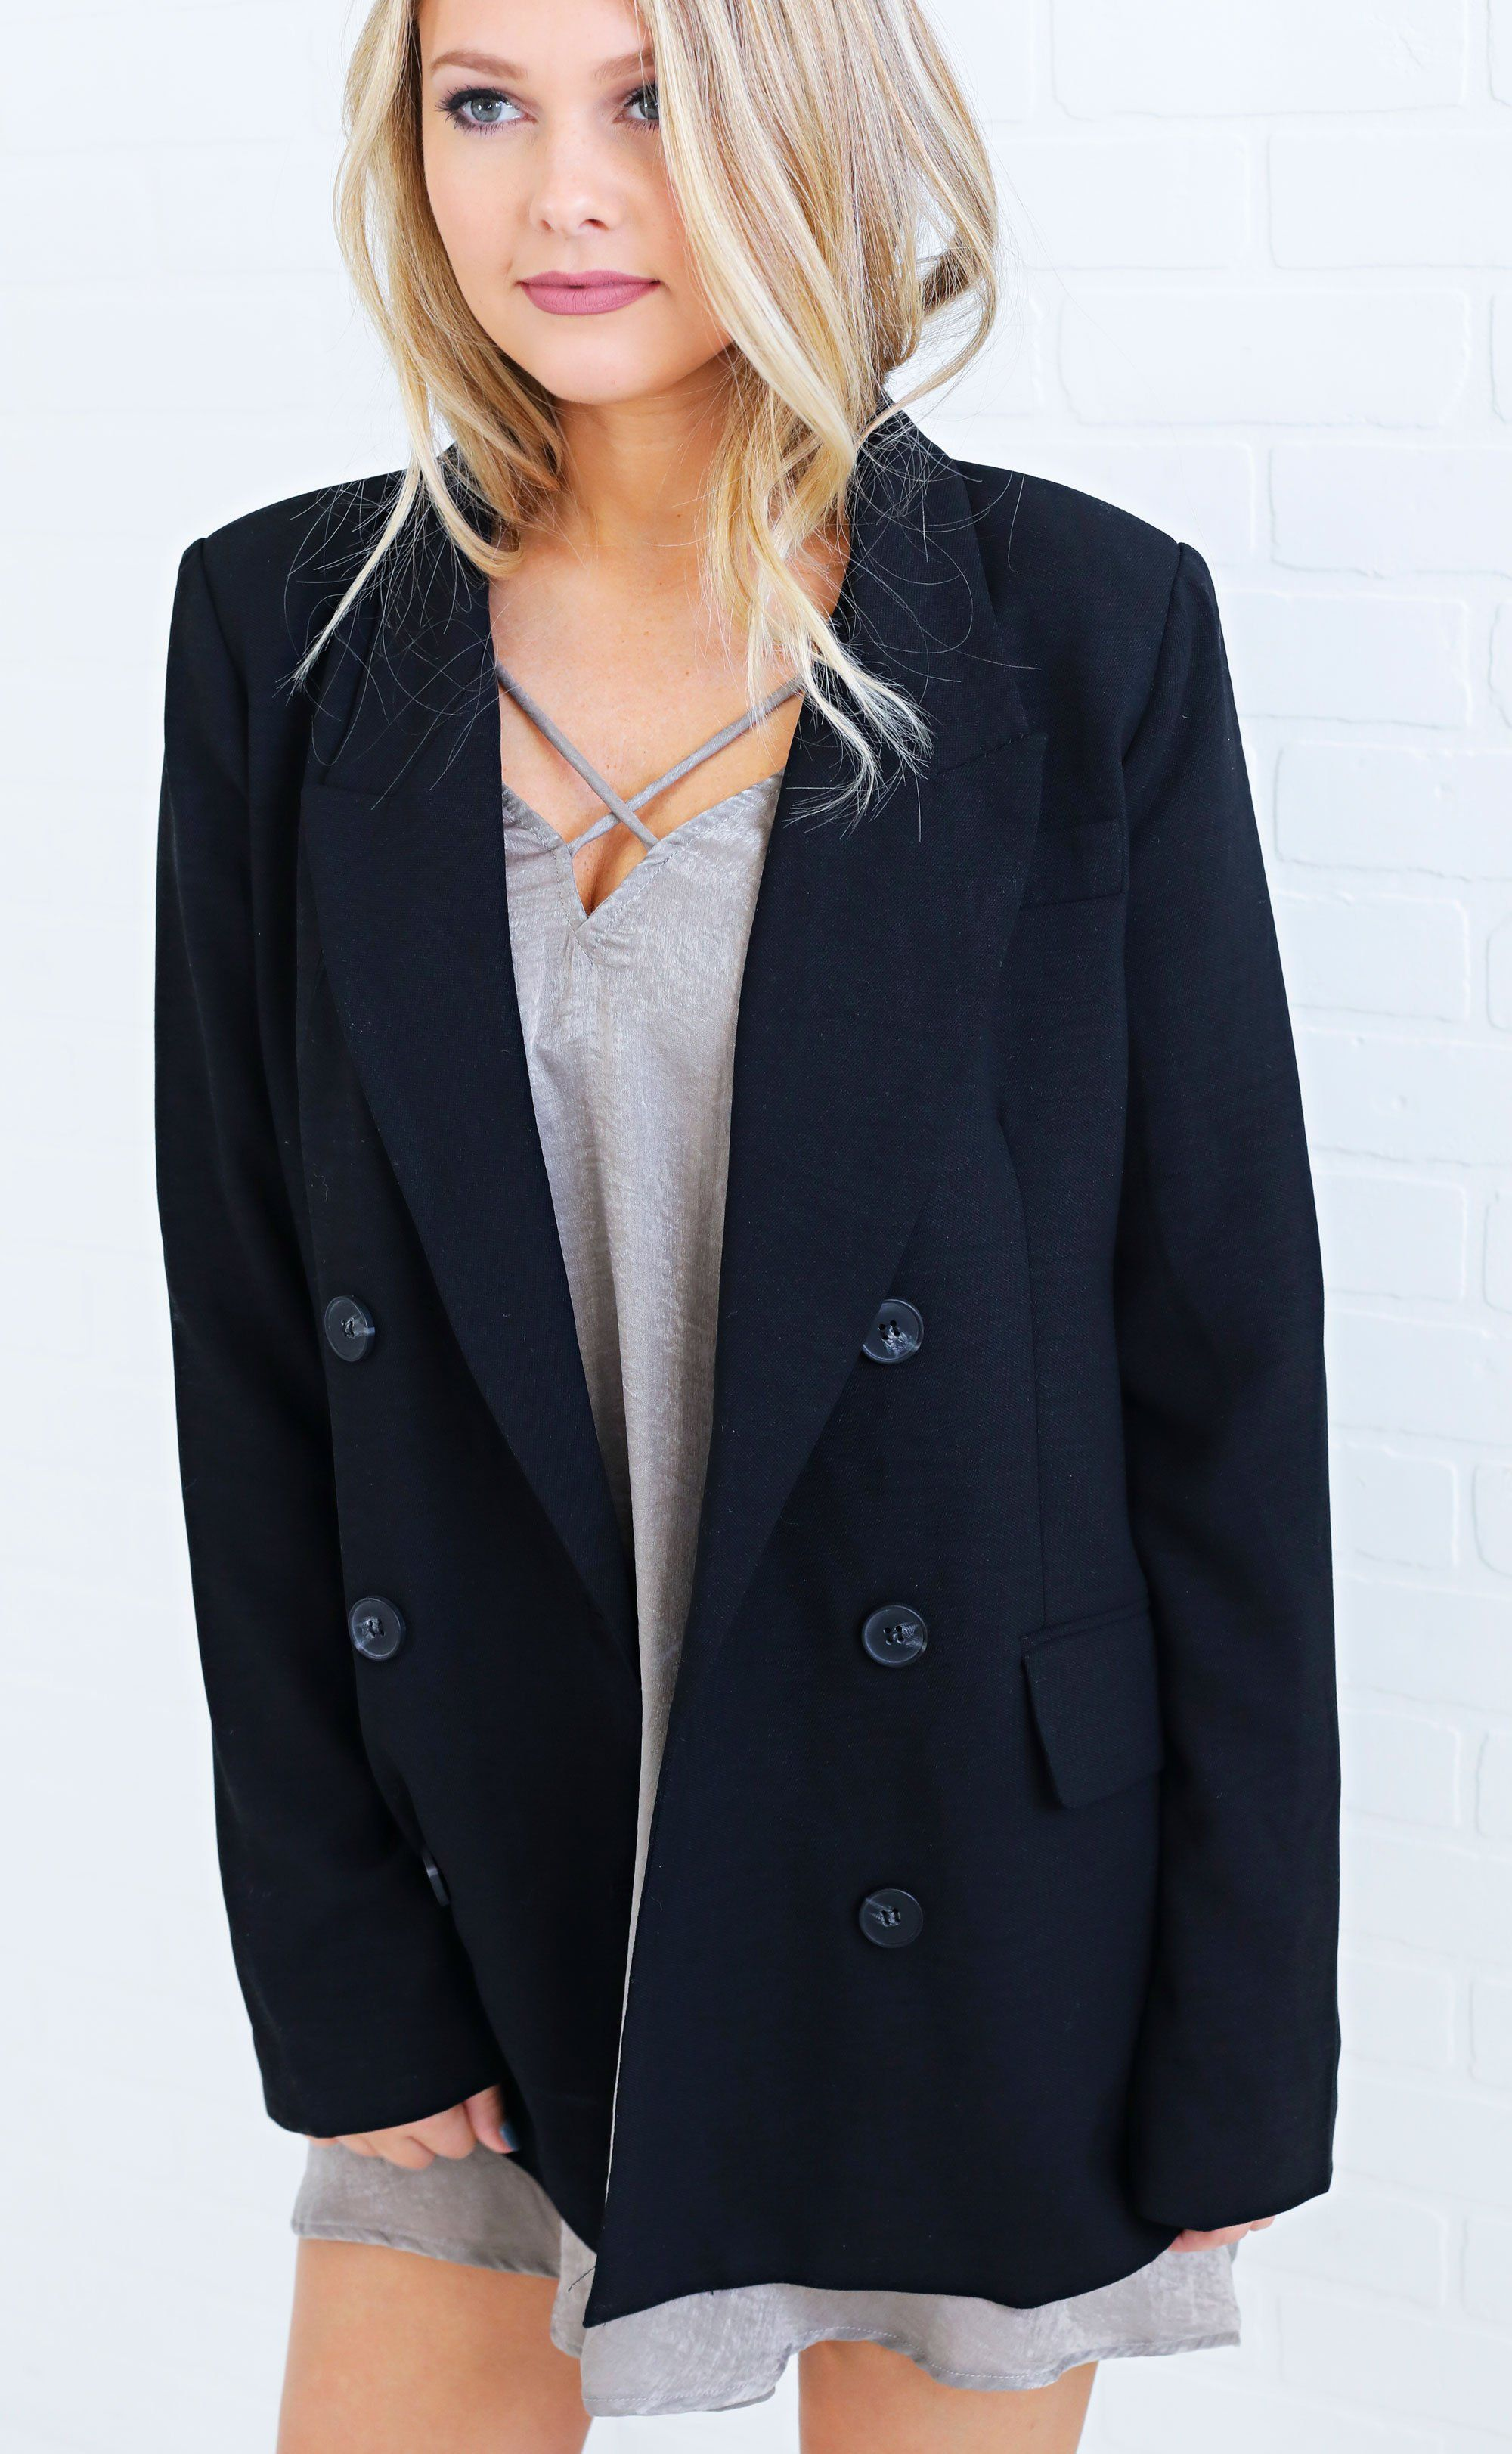 5d14a13ef4 Spice up your office wardrobe! This blazer features a double ...